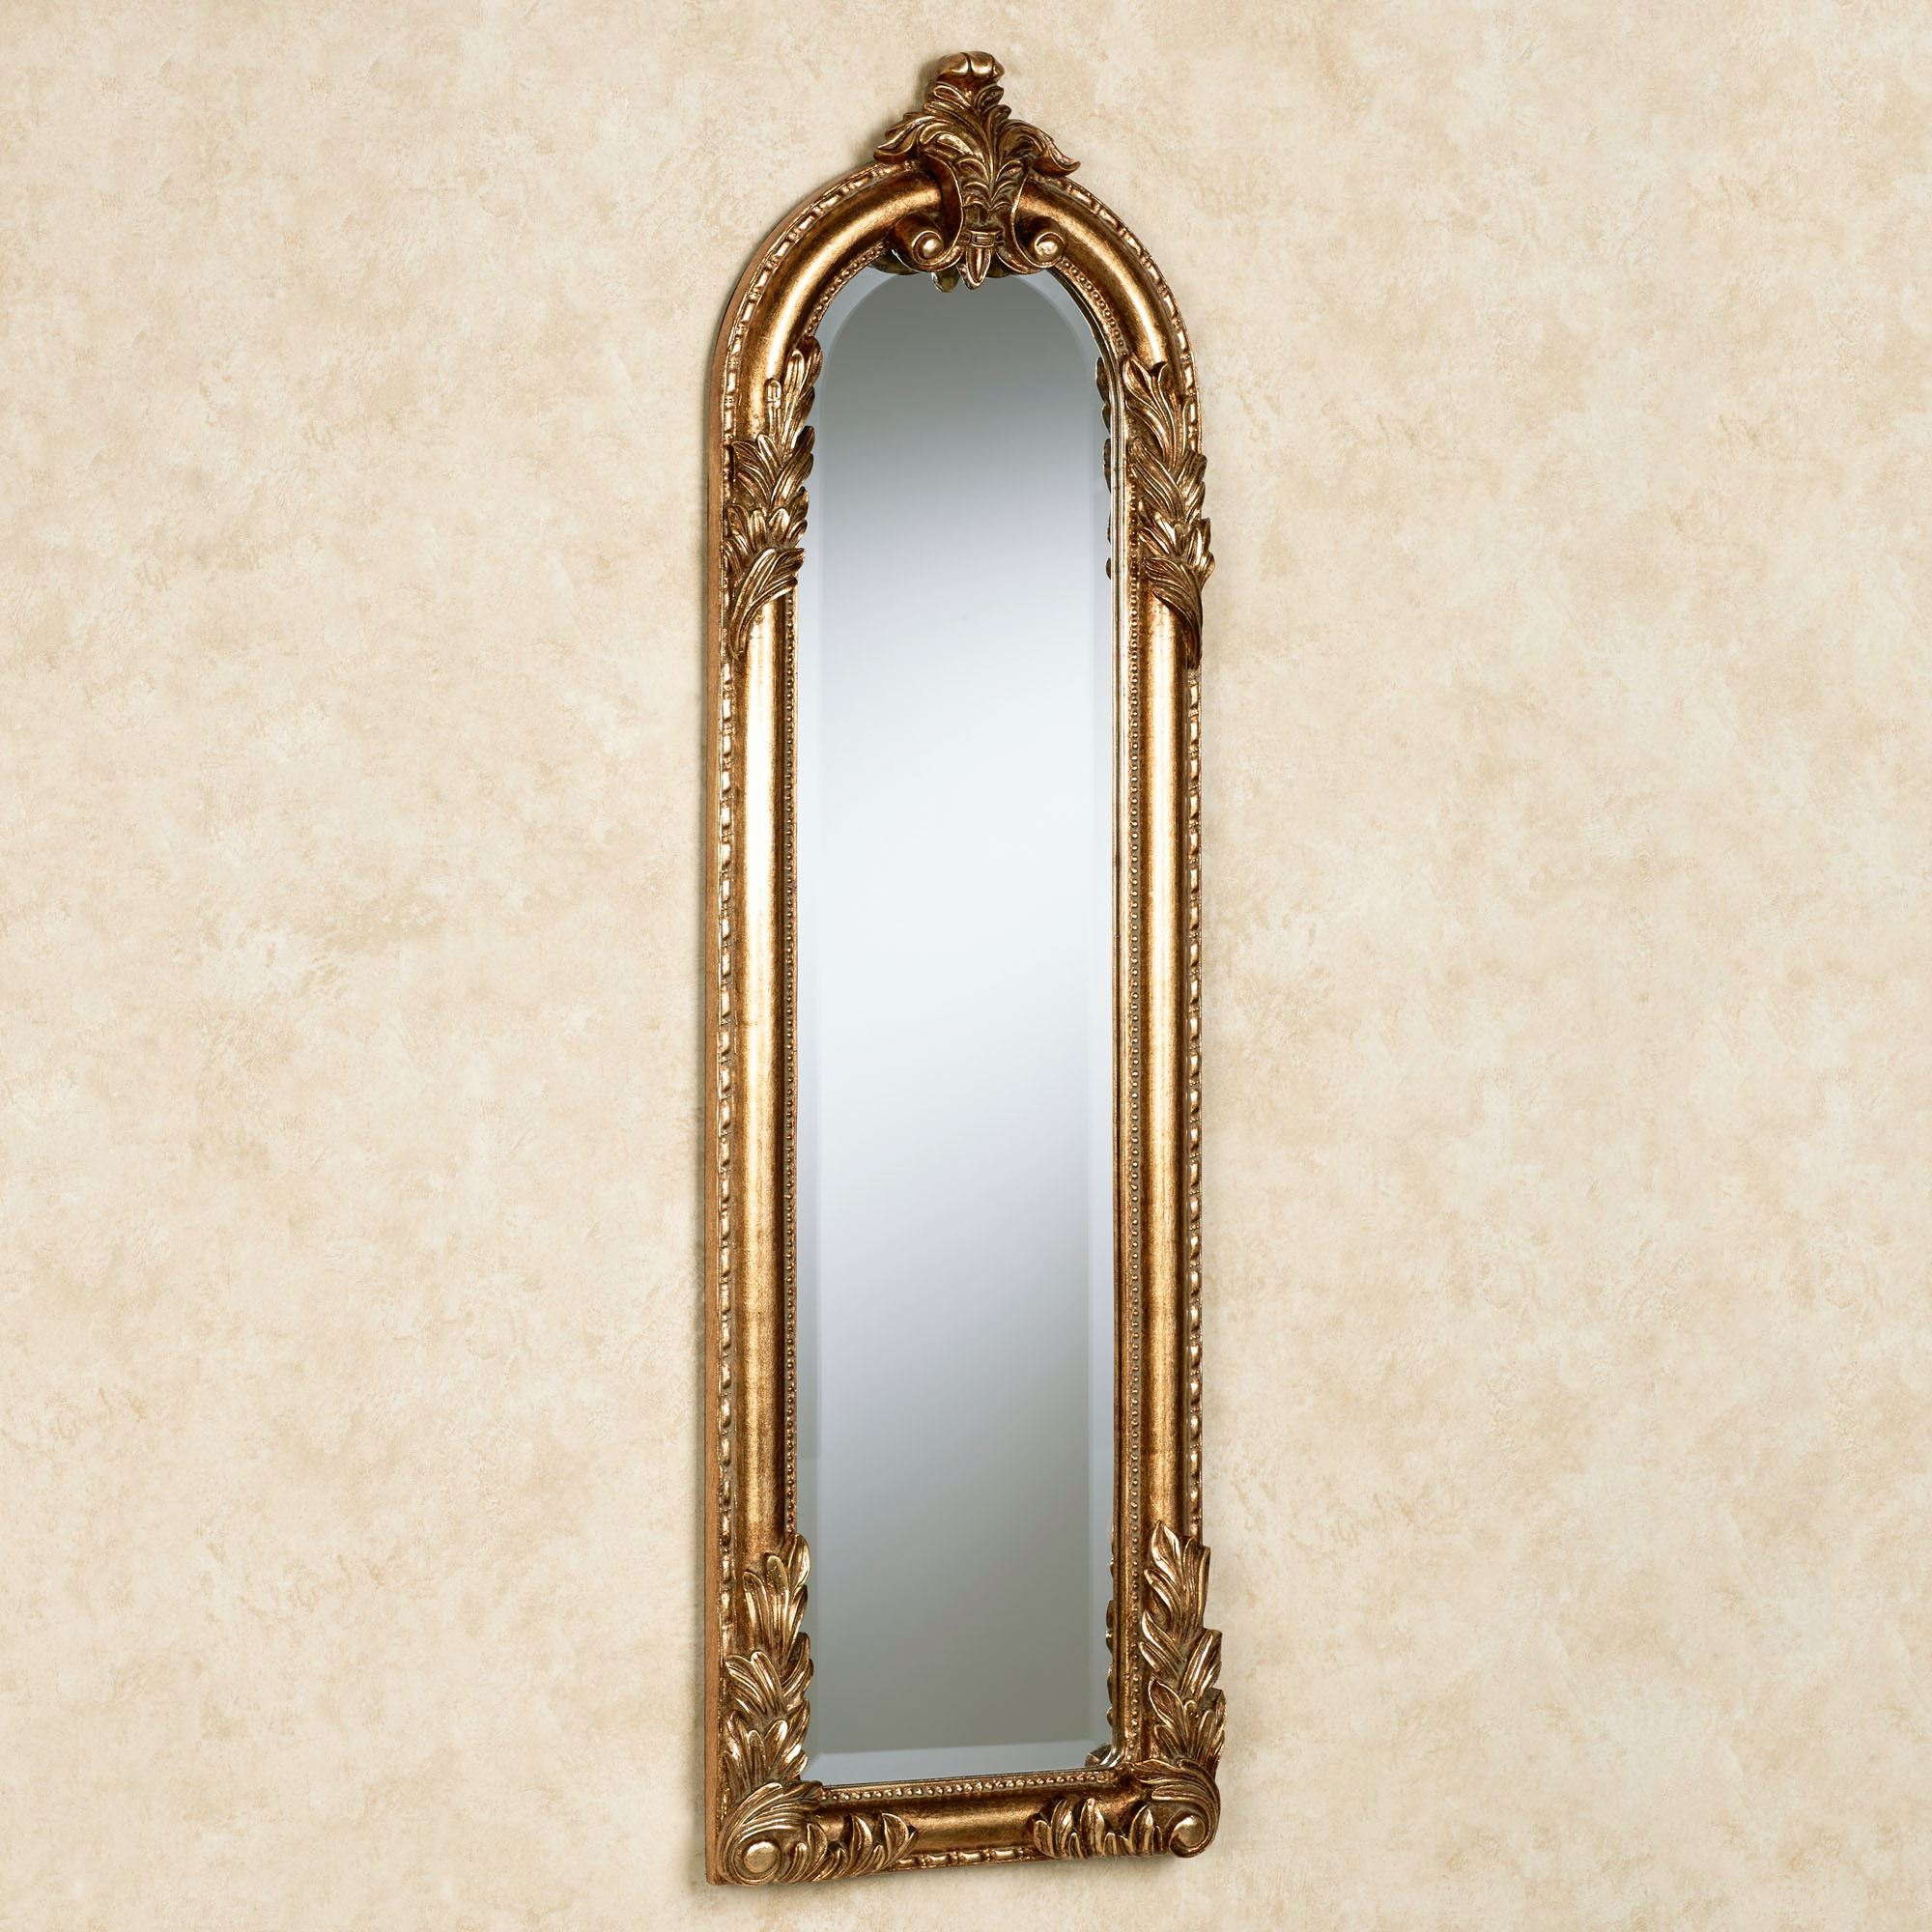 Royal Acanthus Gold Arched Wall Mirror Intended For Gold Arch Wall Mirrors (View 25 of 30)